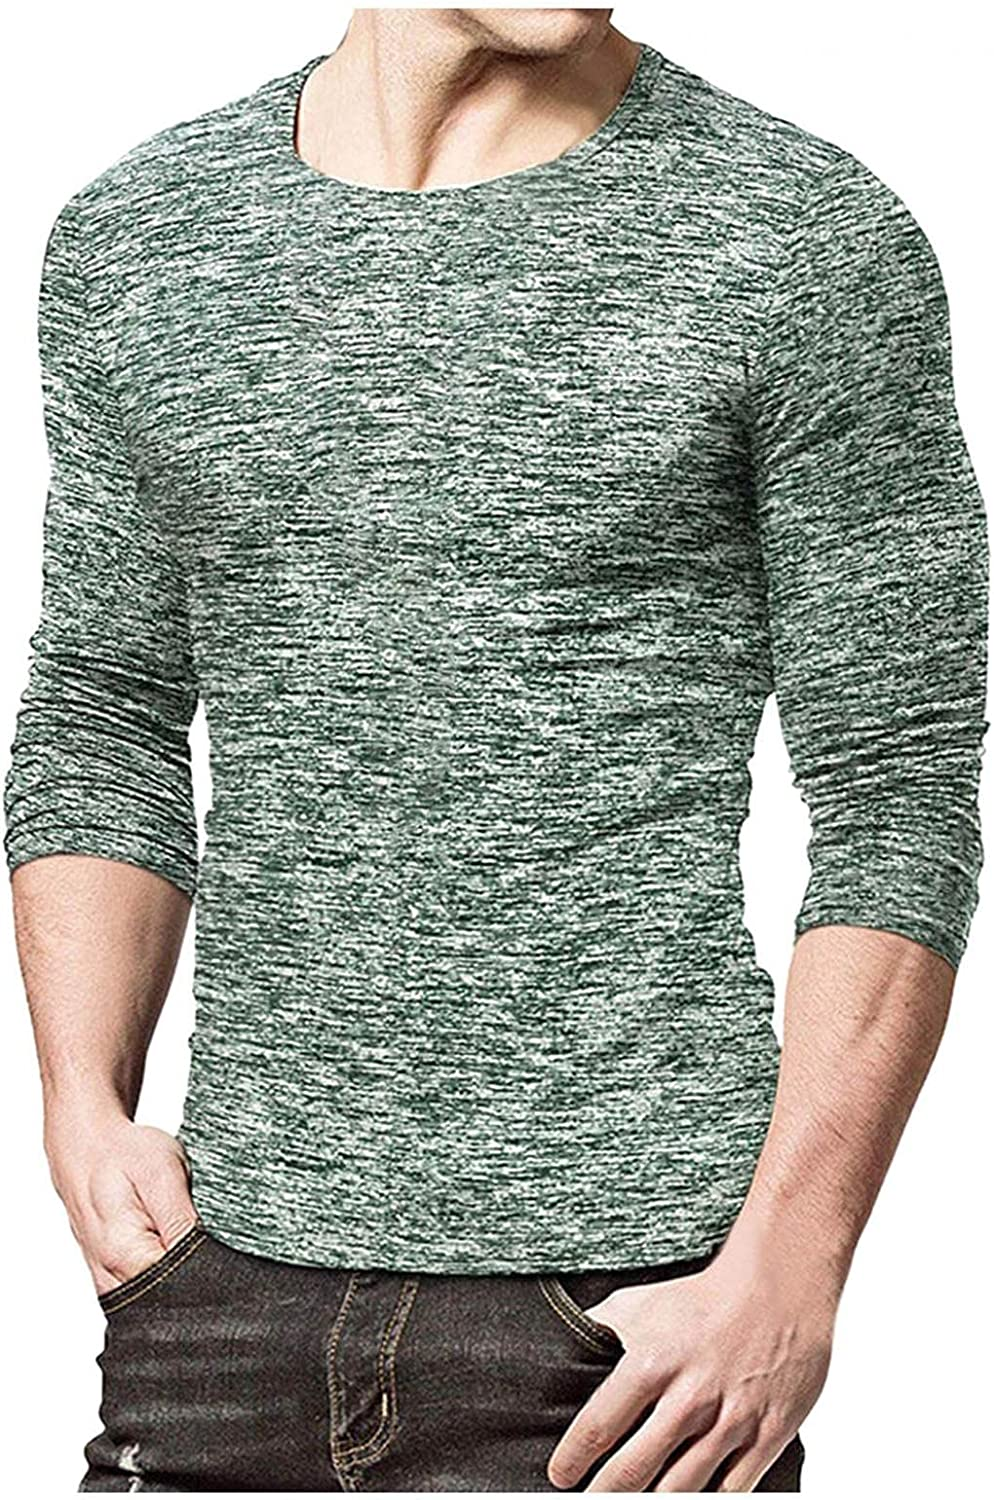 Mens Crewneck Sweatershirts Solid Long Sleeve Pullover Tops Gym Workout Dry-Fit Moisture Wicking Tee Performance Shirt